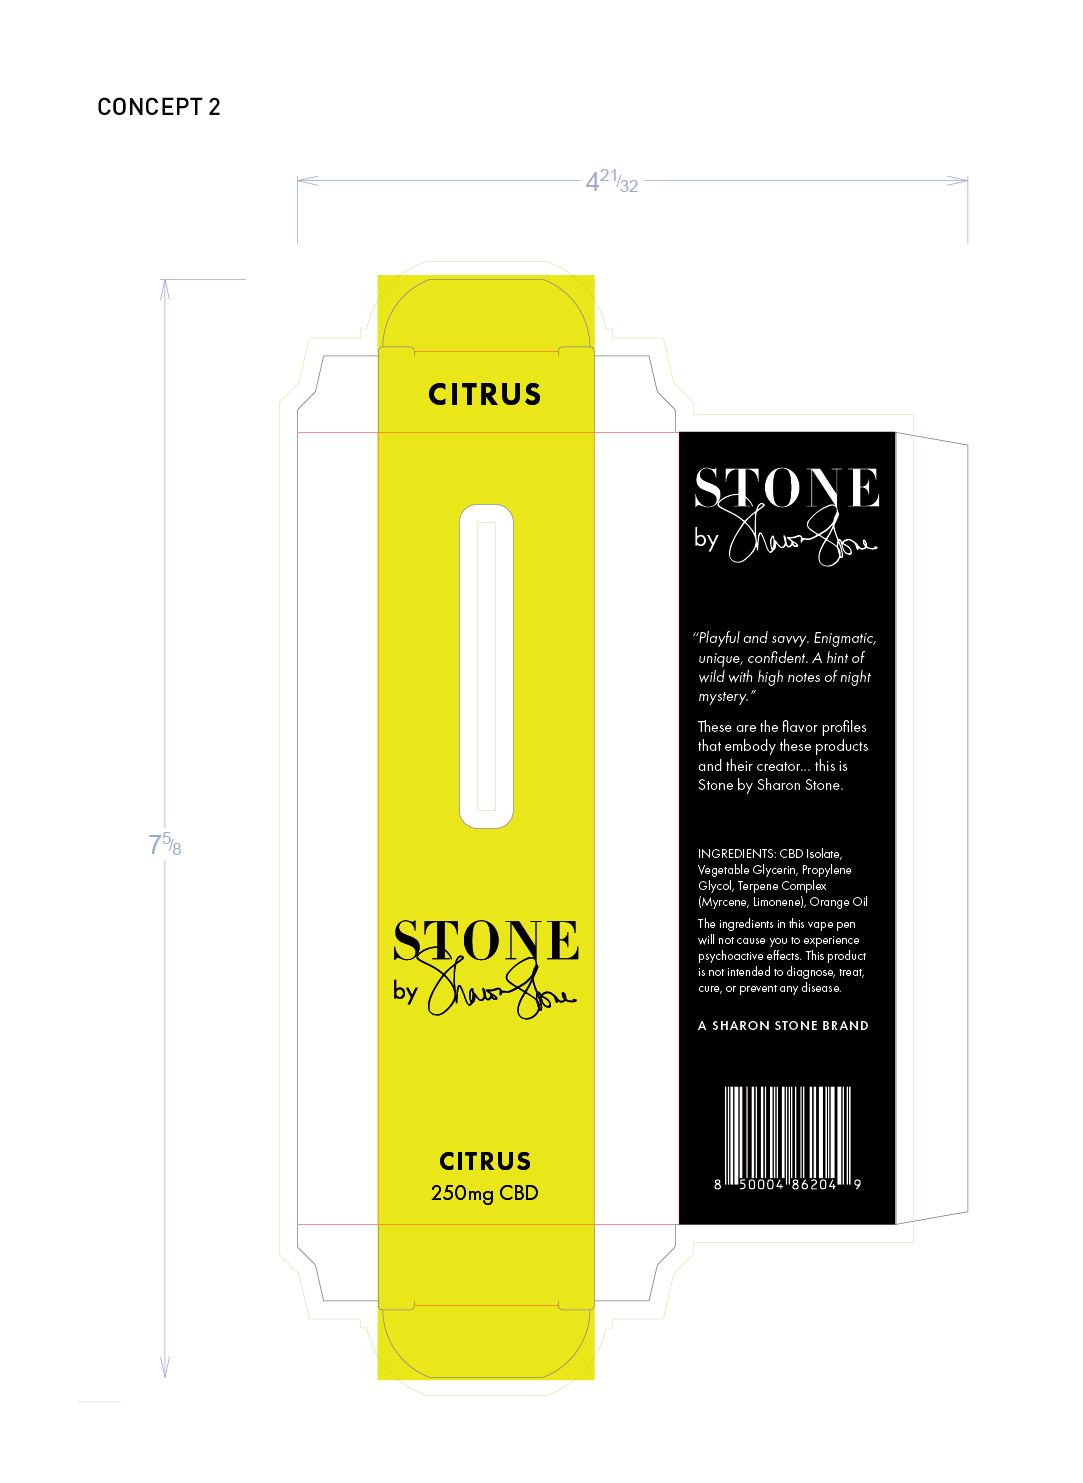 Stone by Sharon Stone prototypes—vape pen box